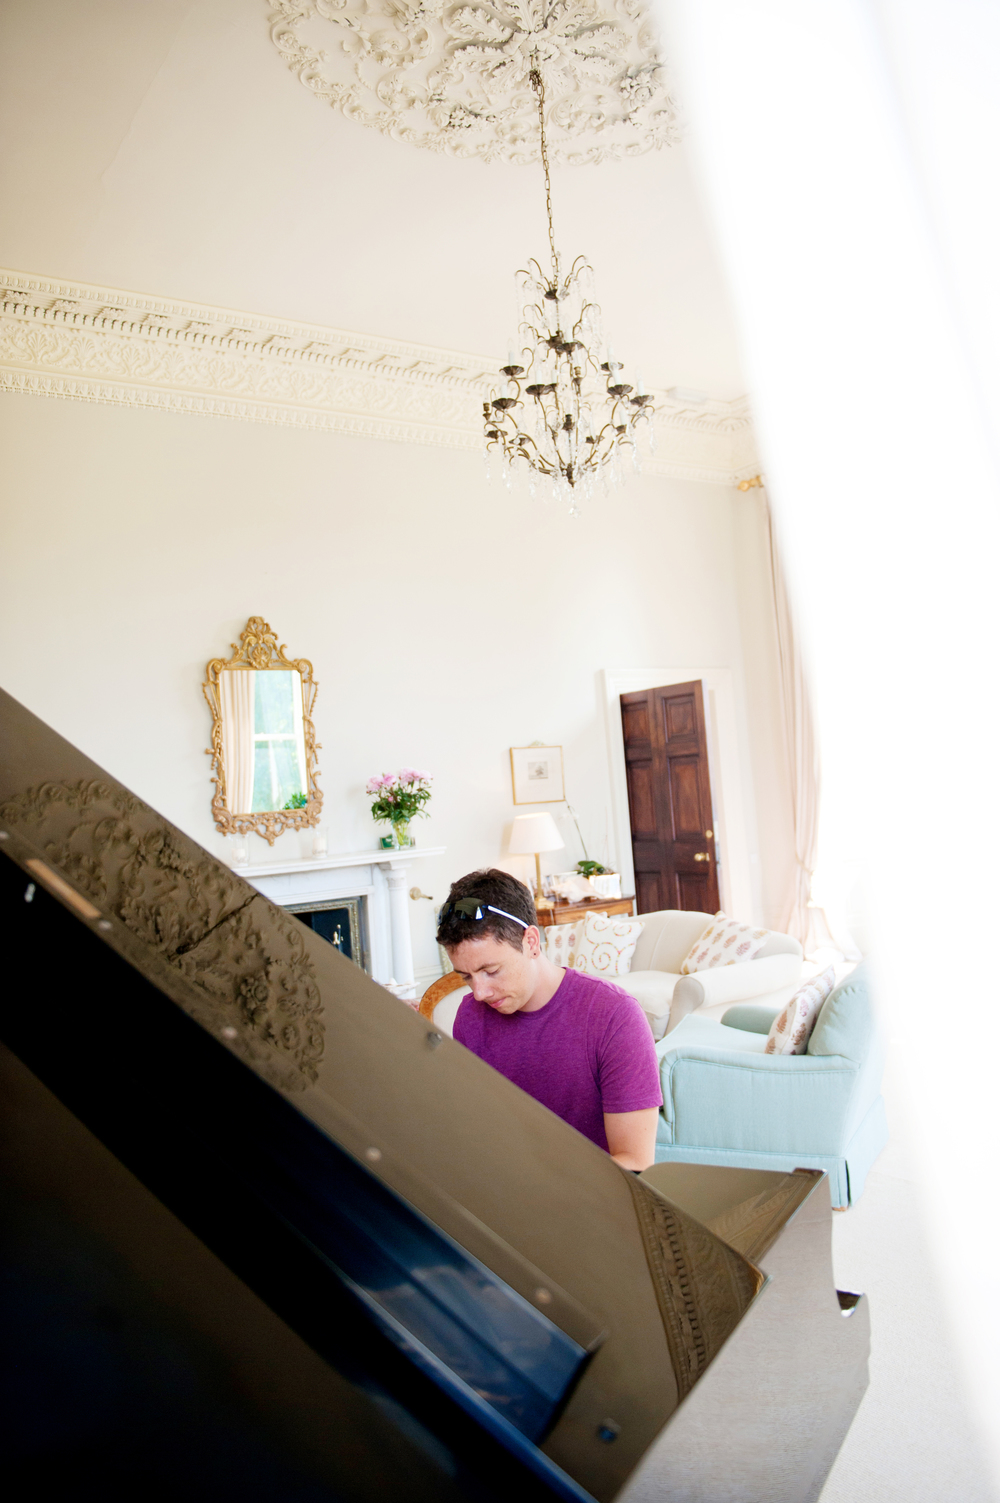 Kilshane House drawing room. -Photography:   Weddings by KARA   © - Wedding Location: Kilshane House, Tipperary, Ireland